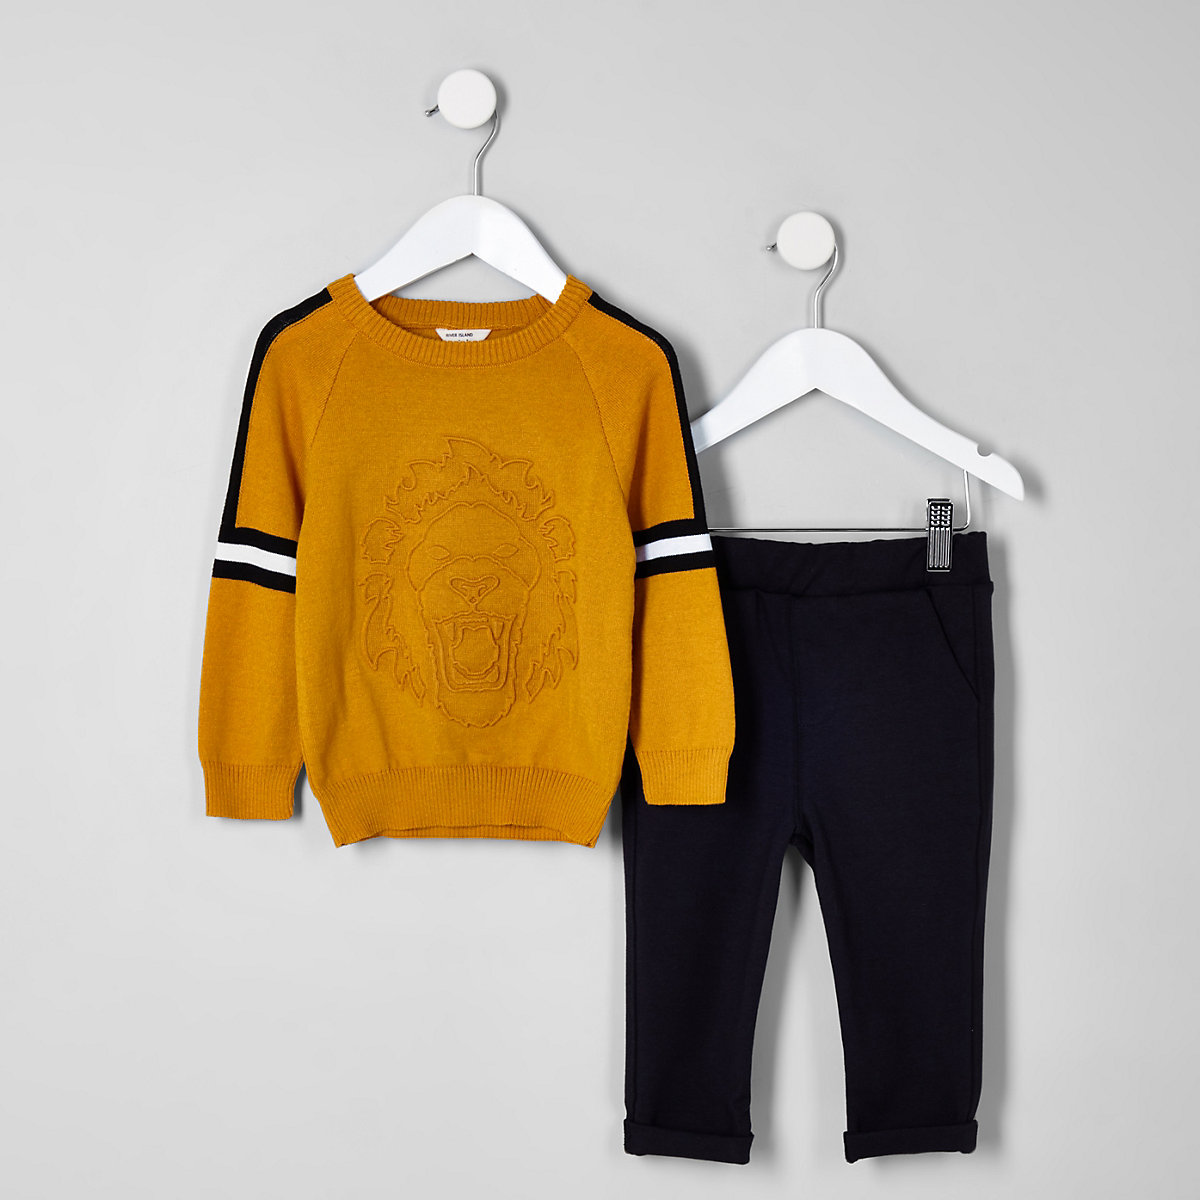 Mini boys dark yellow embossed sweater outfit